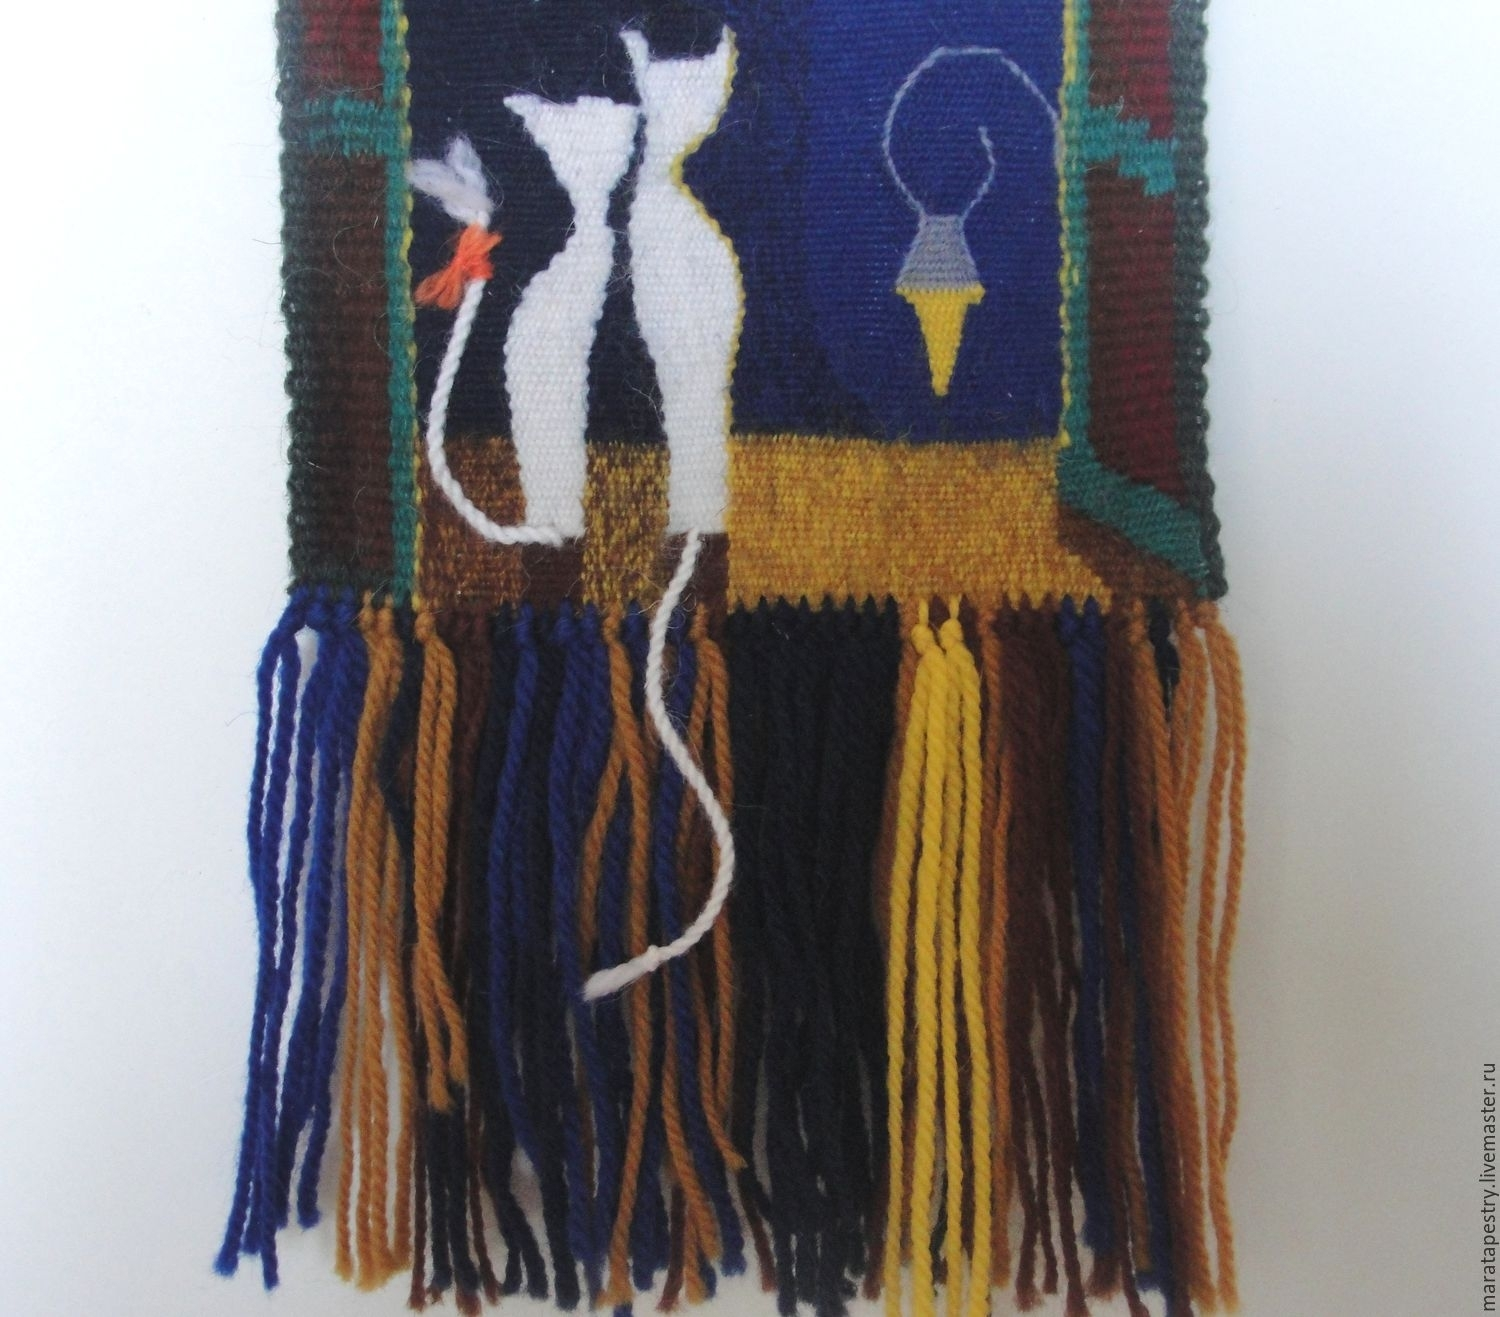 Cats Woven Wall Hanging Woven Tapestry Wall Art Fiber Textile Intended For Recent Woven Textile Wall Art (Gallery 7 of 15)